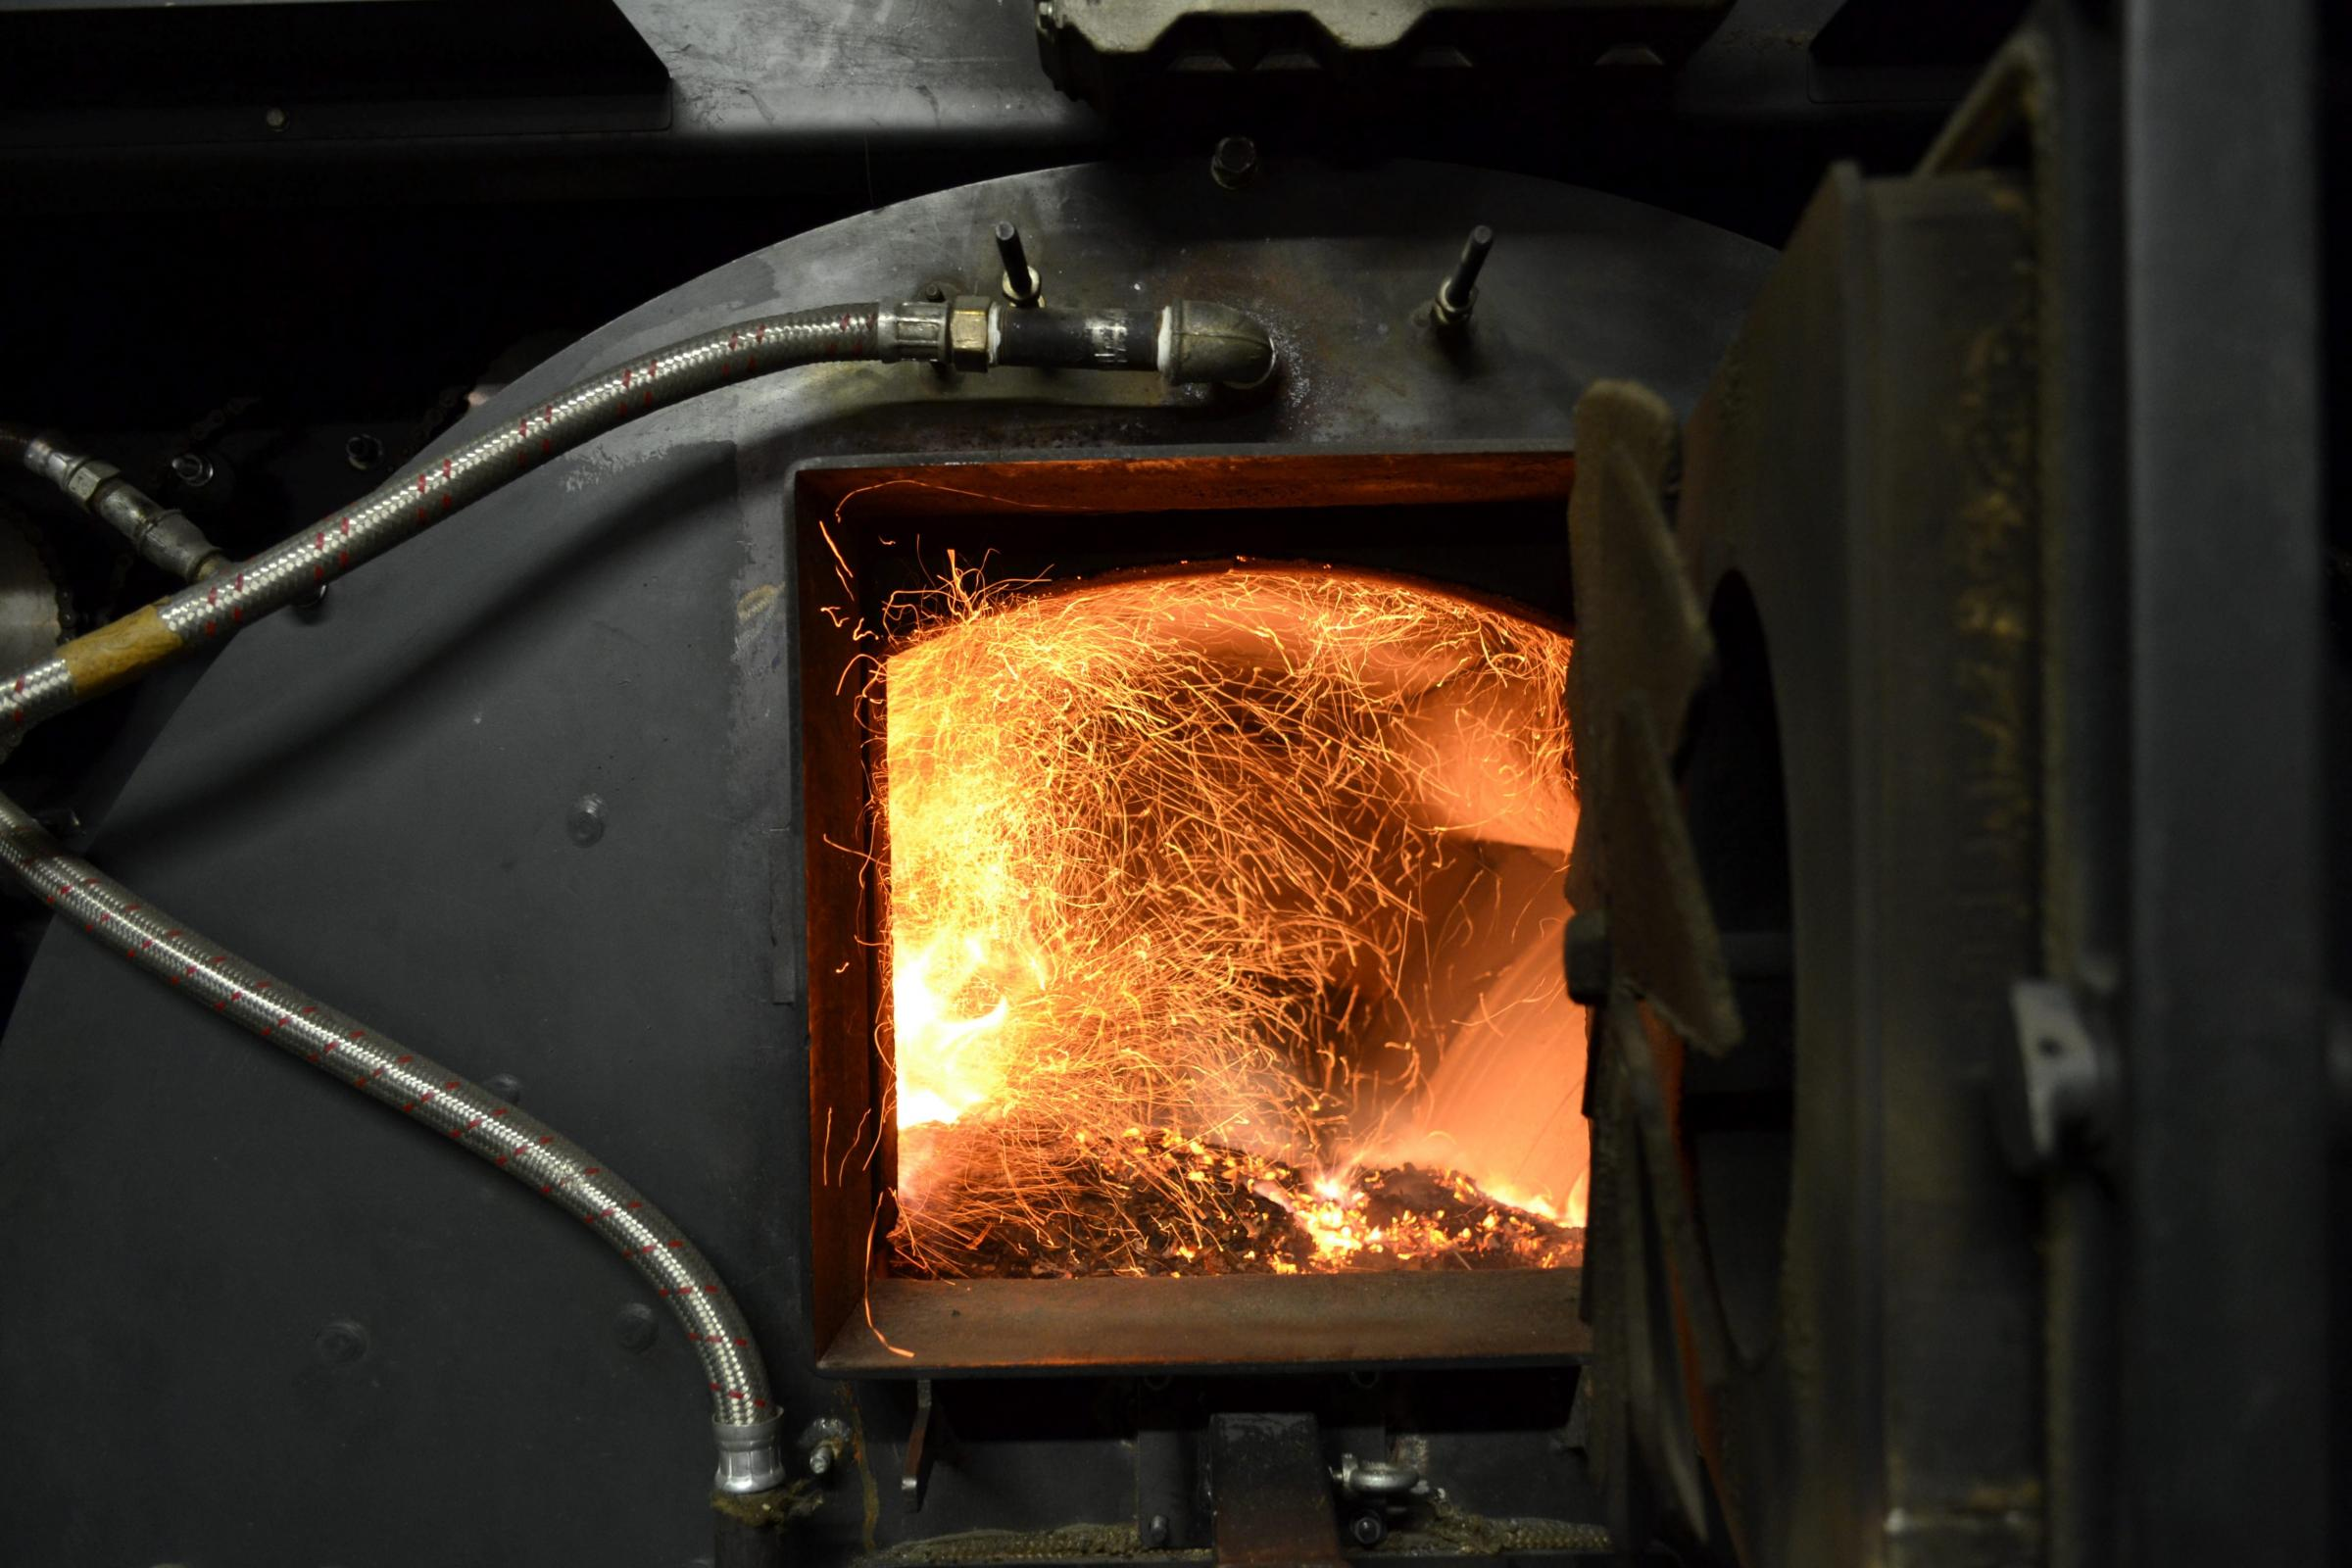 Biomass boilers have become popular on Scottish farms – but the RHI income for new installations is set to drop